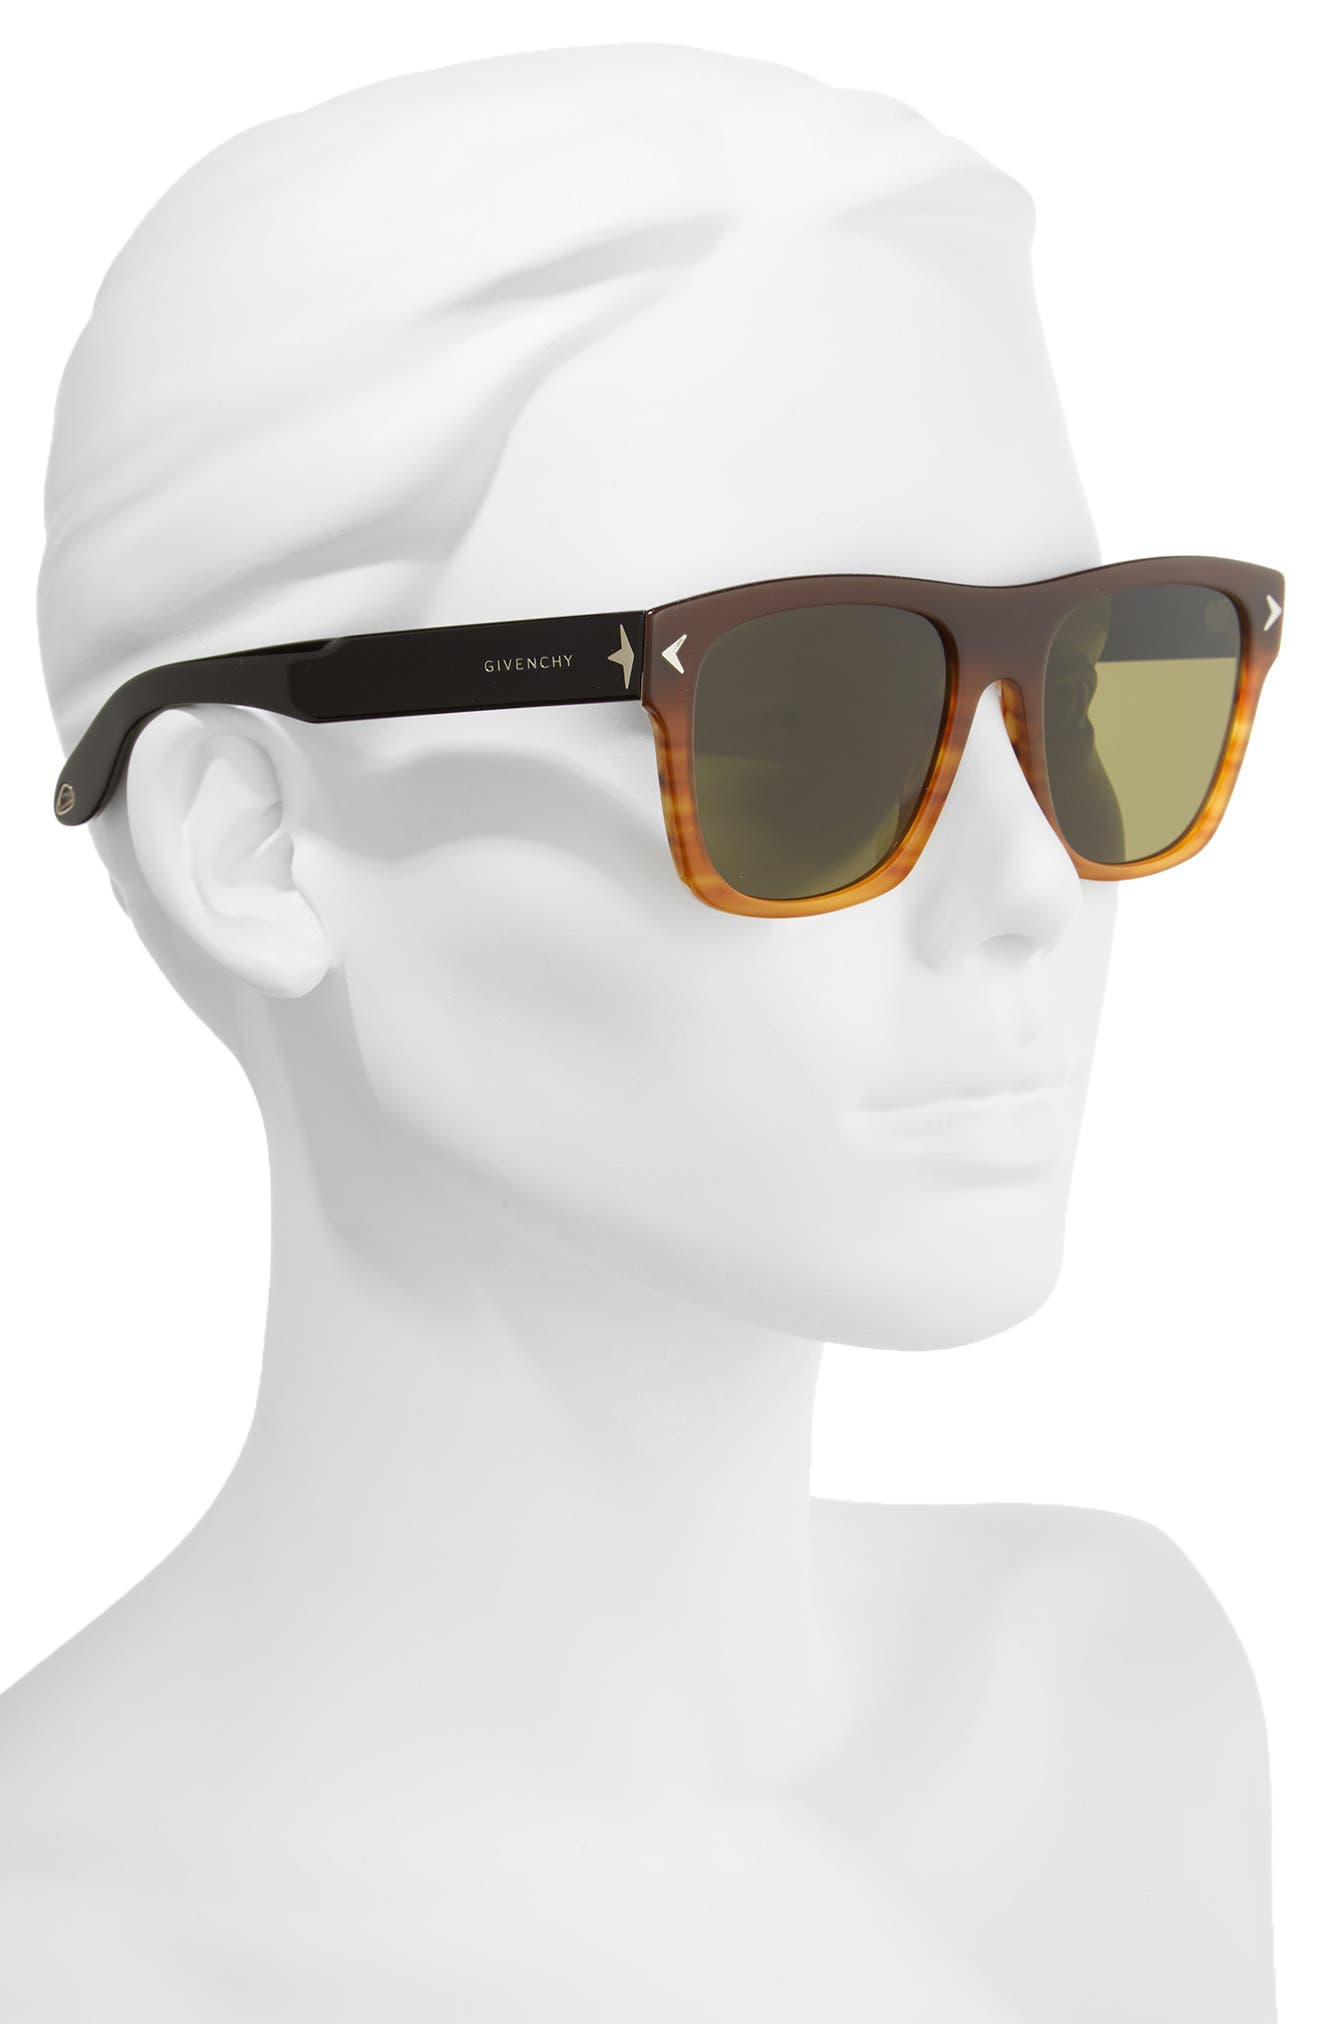 55mm Square Sunglasses,                             Alternate thumbnail 2, color,                             Brown/ Black